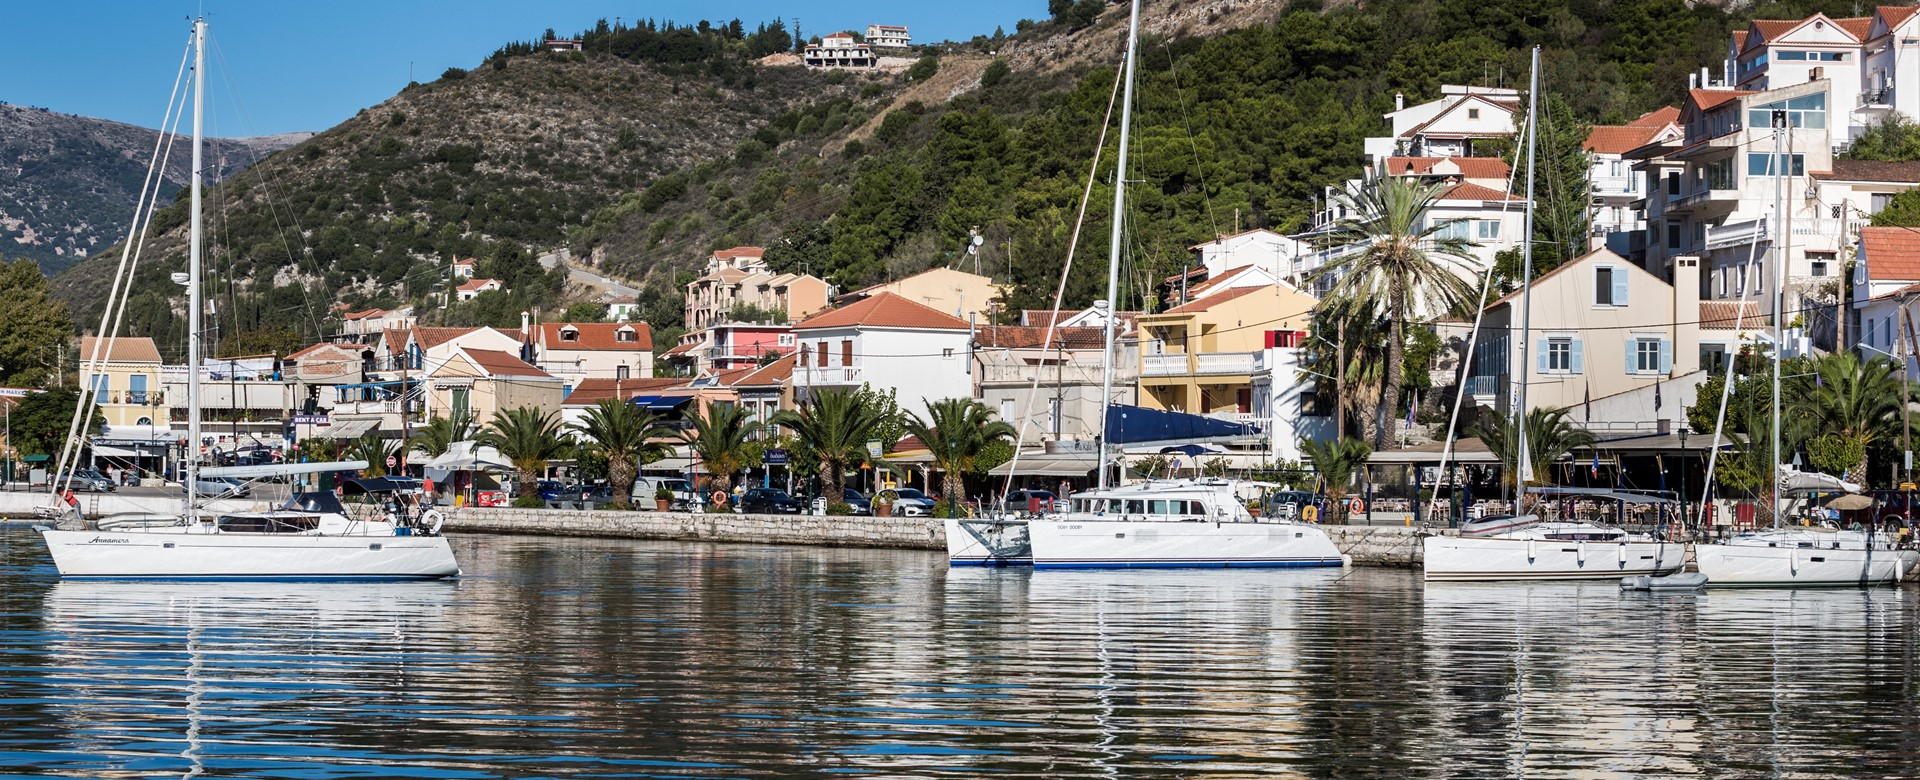 Looking back to Palm House Harbourfront Mansion from the harbour of Agia Efimia, Kefalonia, Greek Islands